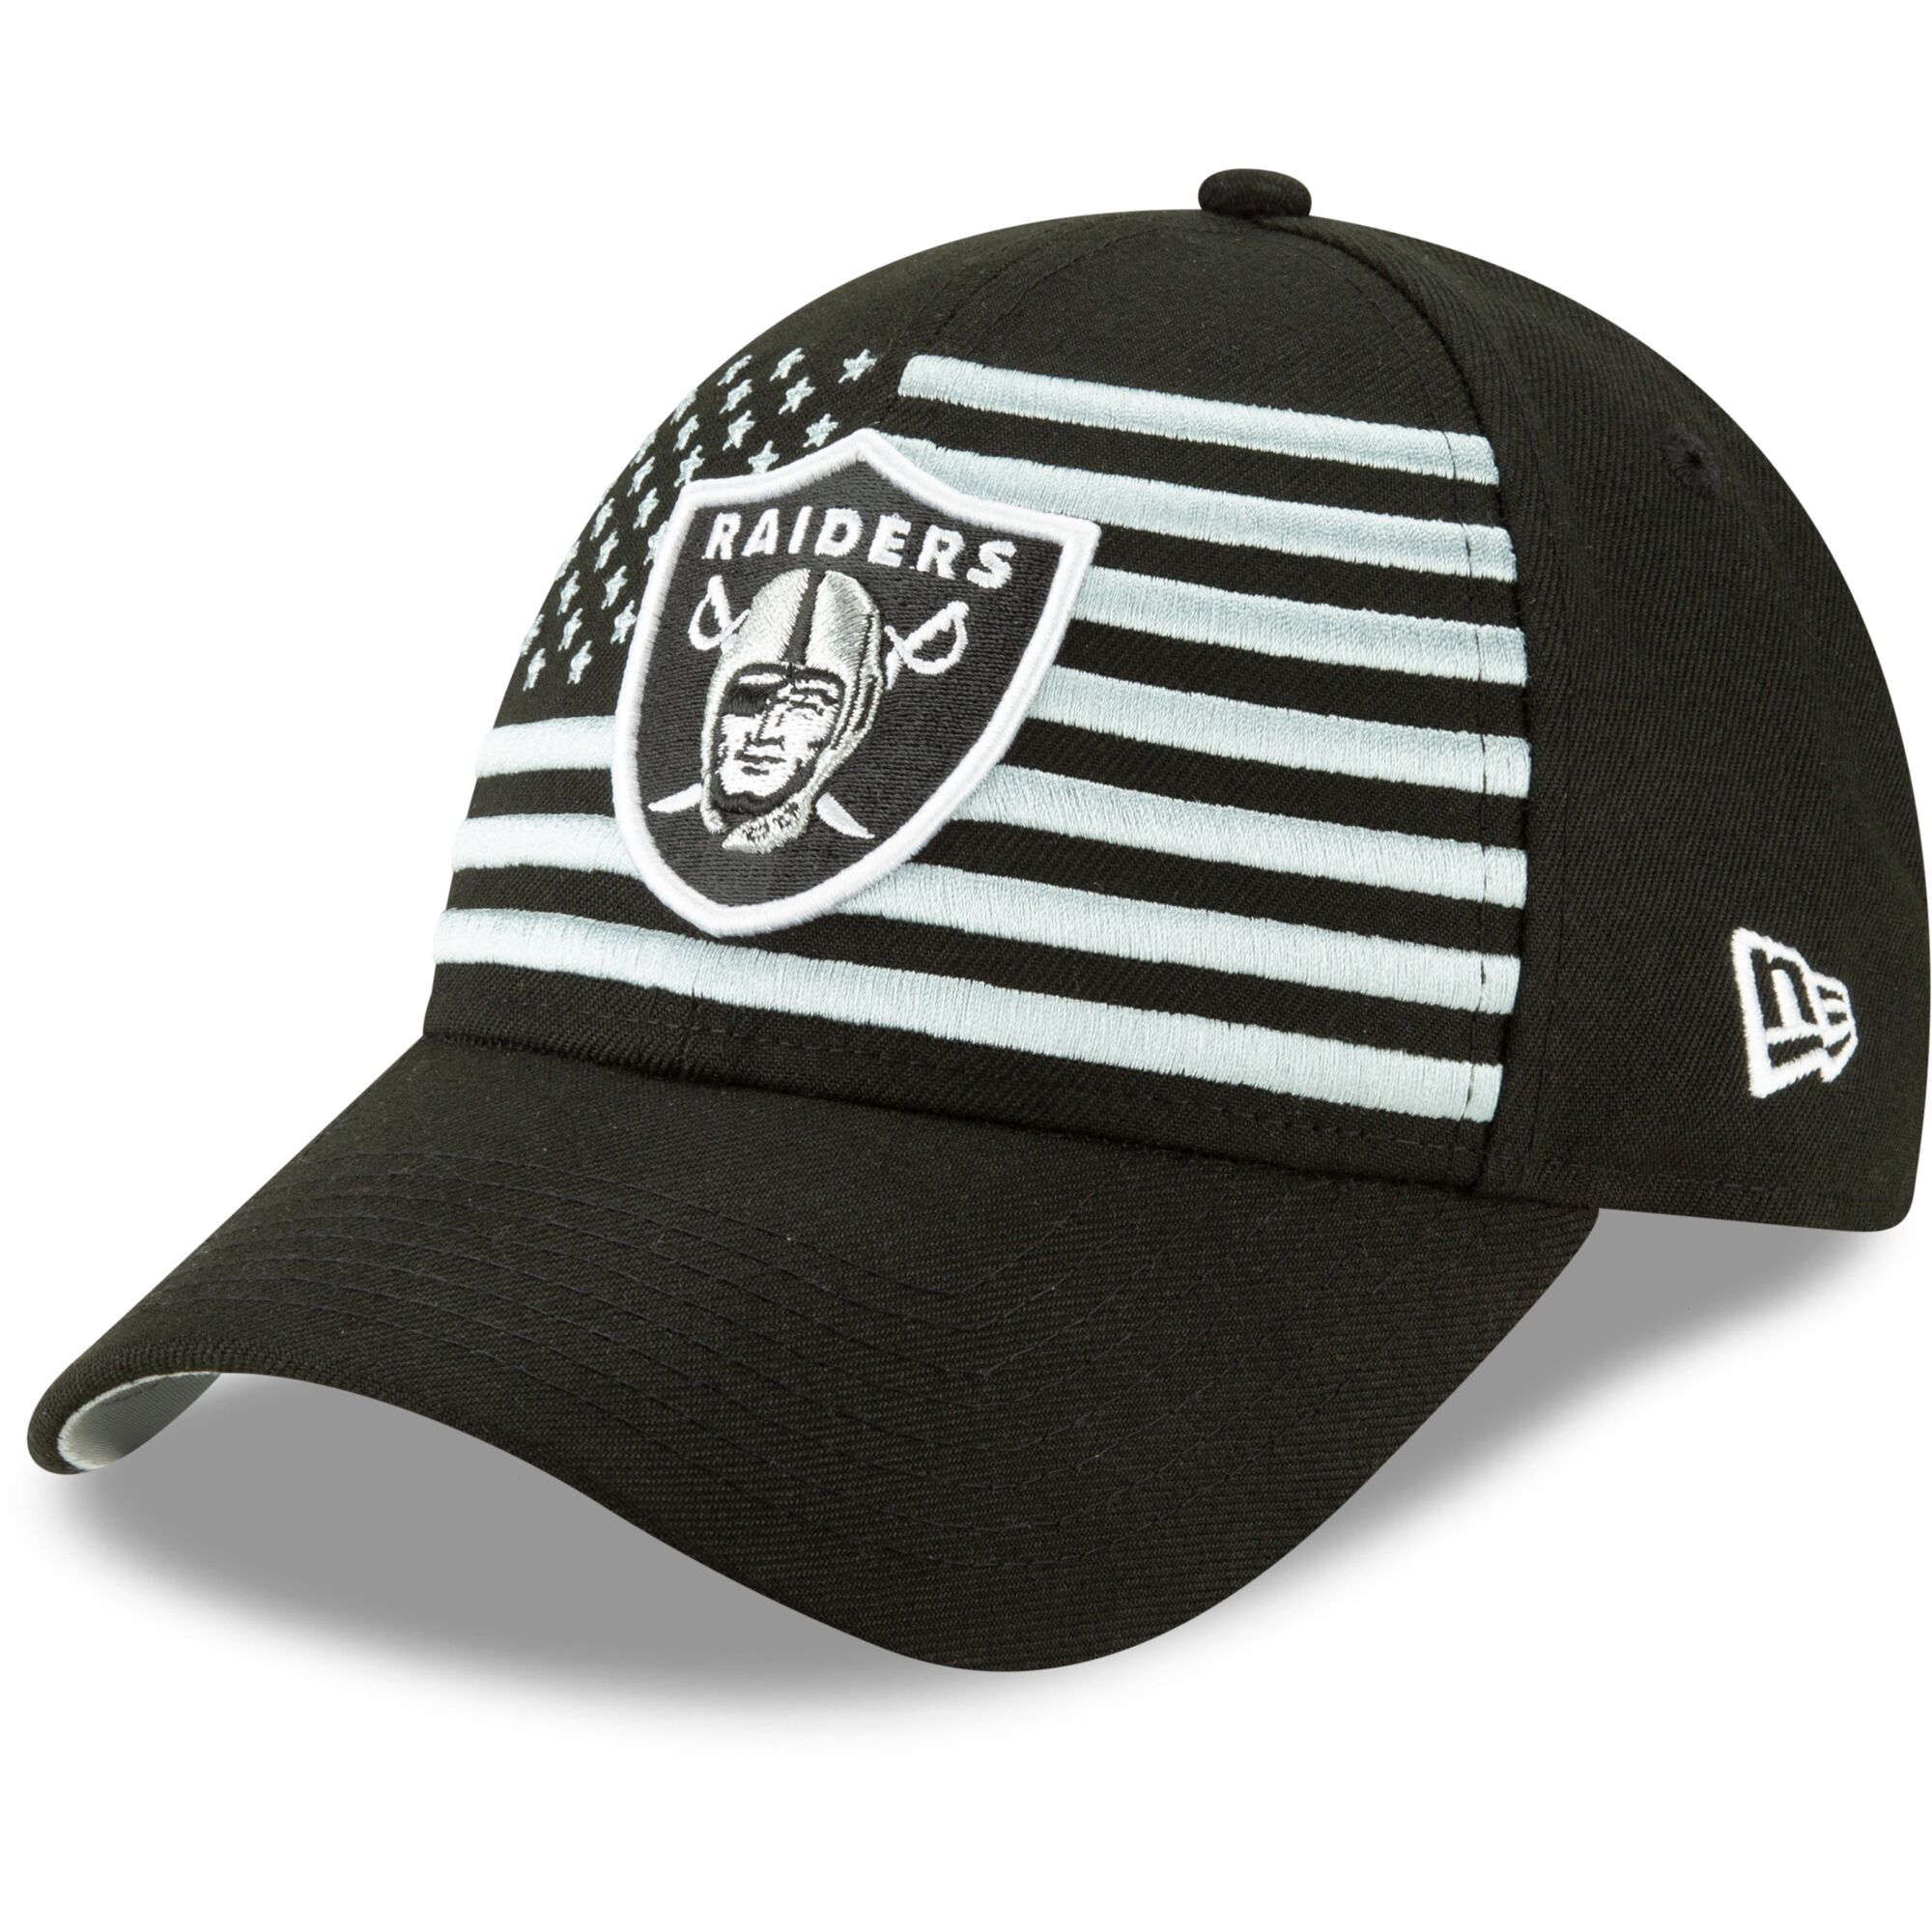 newest cd8a2 cd778 The New Era 2019 NFL Draft hats drop with new looks for every team